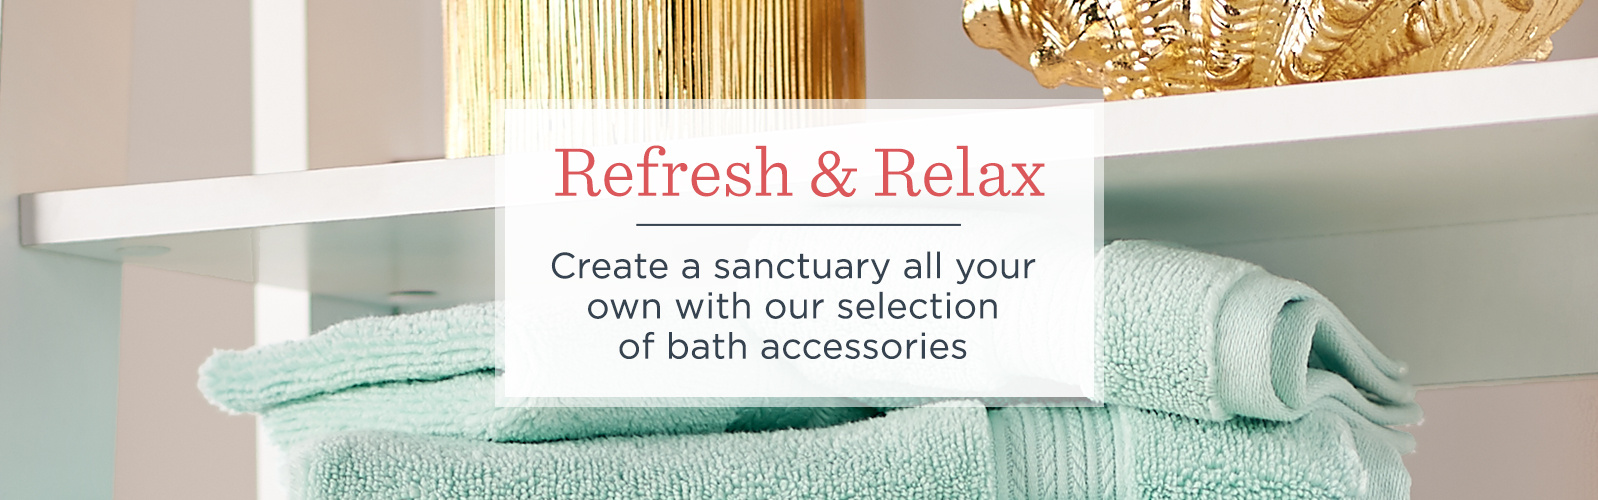 Refresh & Relax, Create a sanctuary all your own with our selection of bath accessories